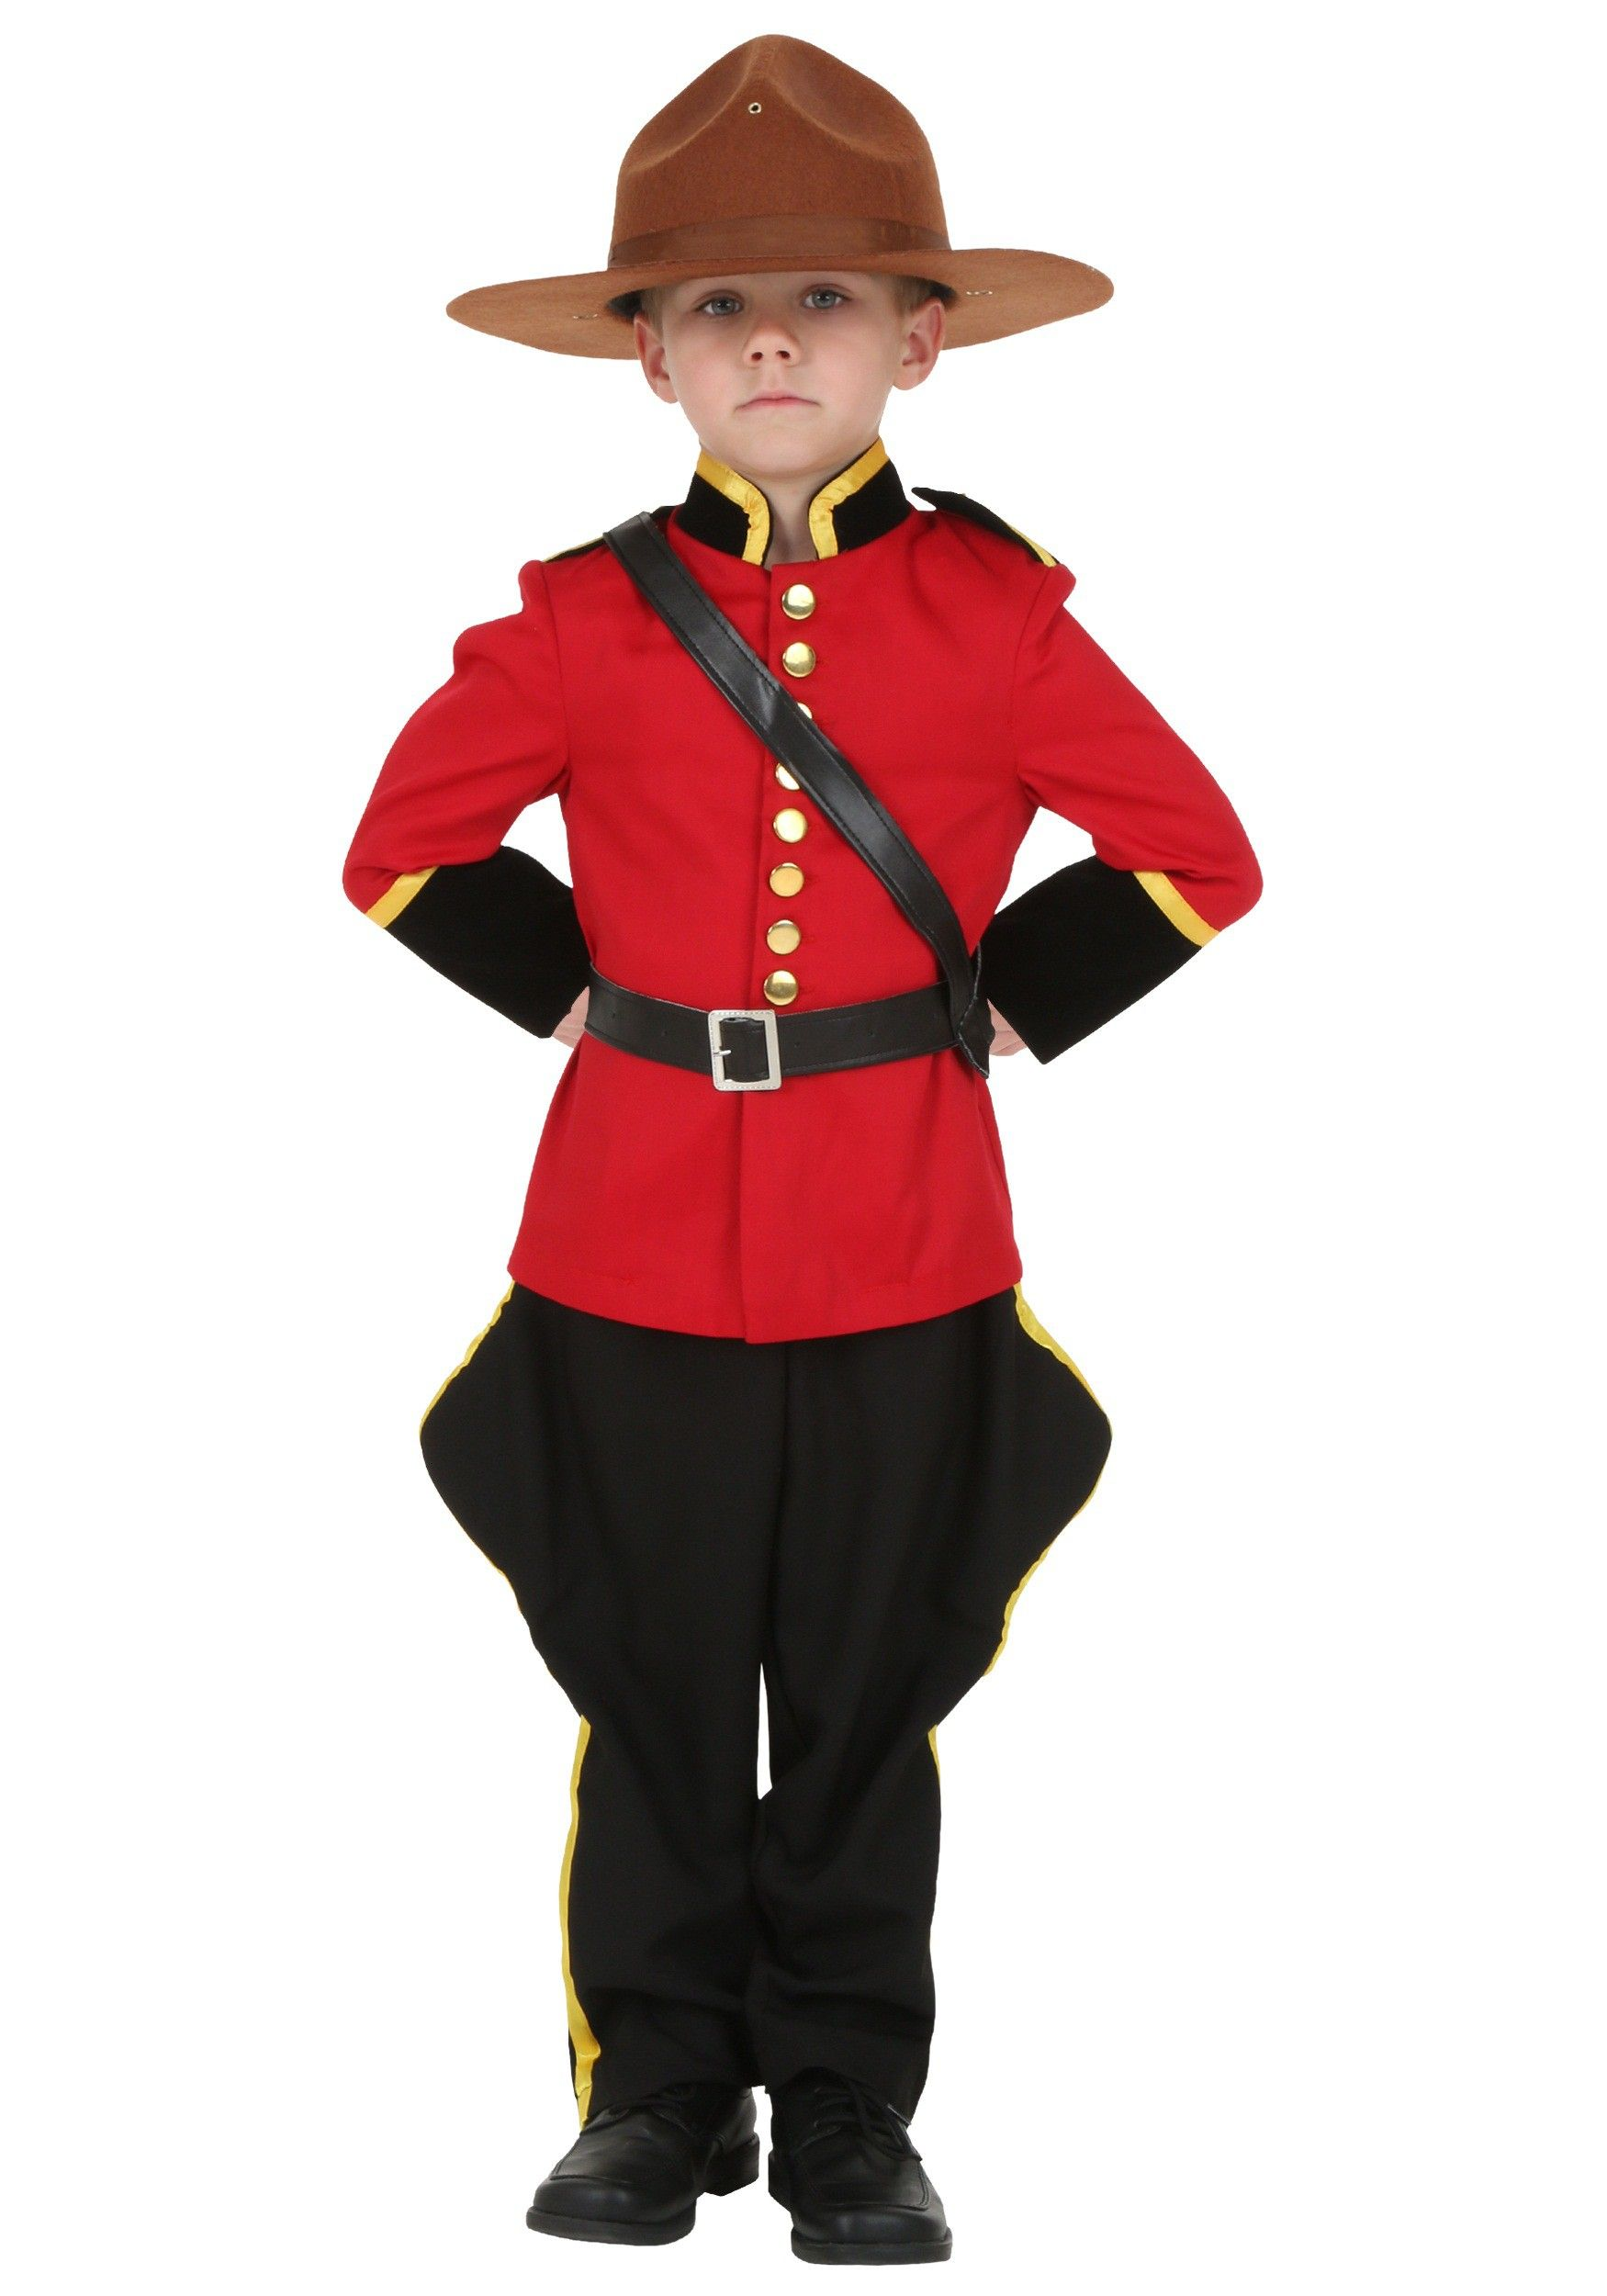 Toddler Canadian Mountie Costume | Halloween costume ideas ...